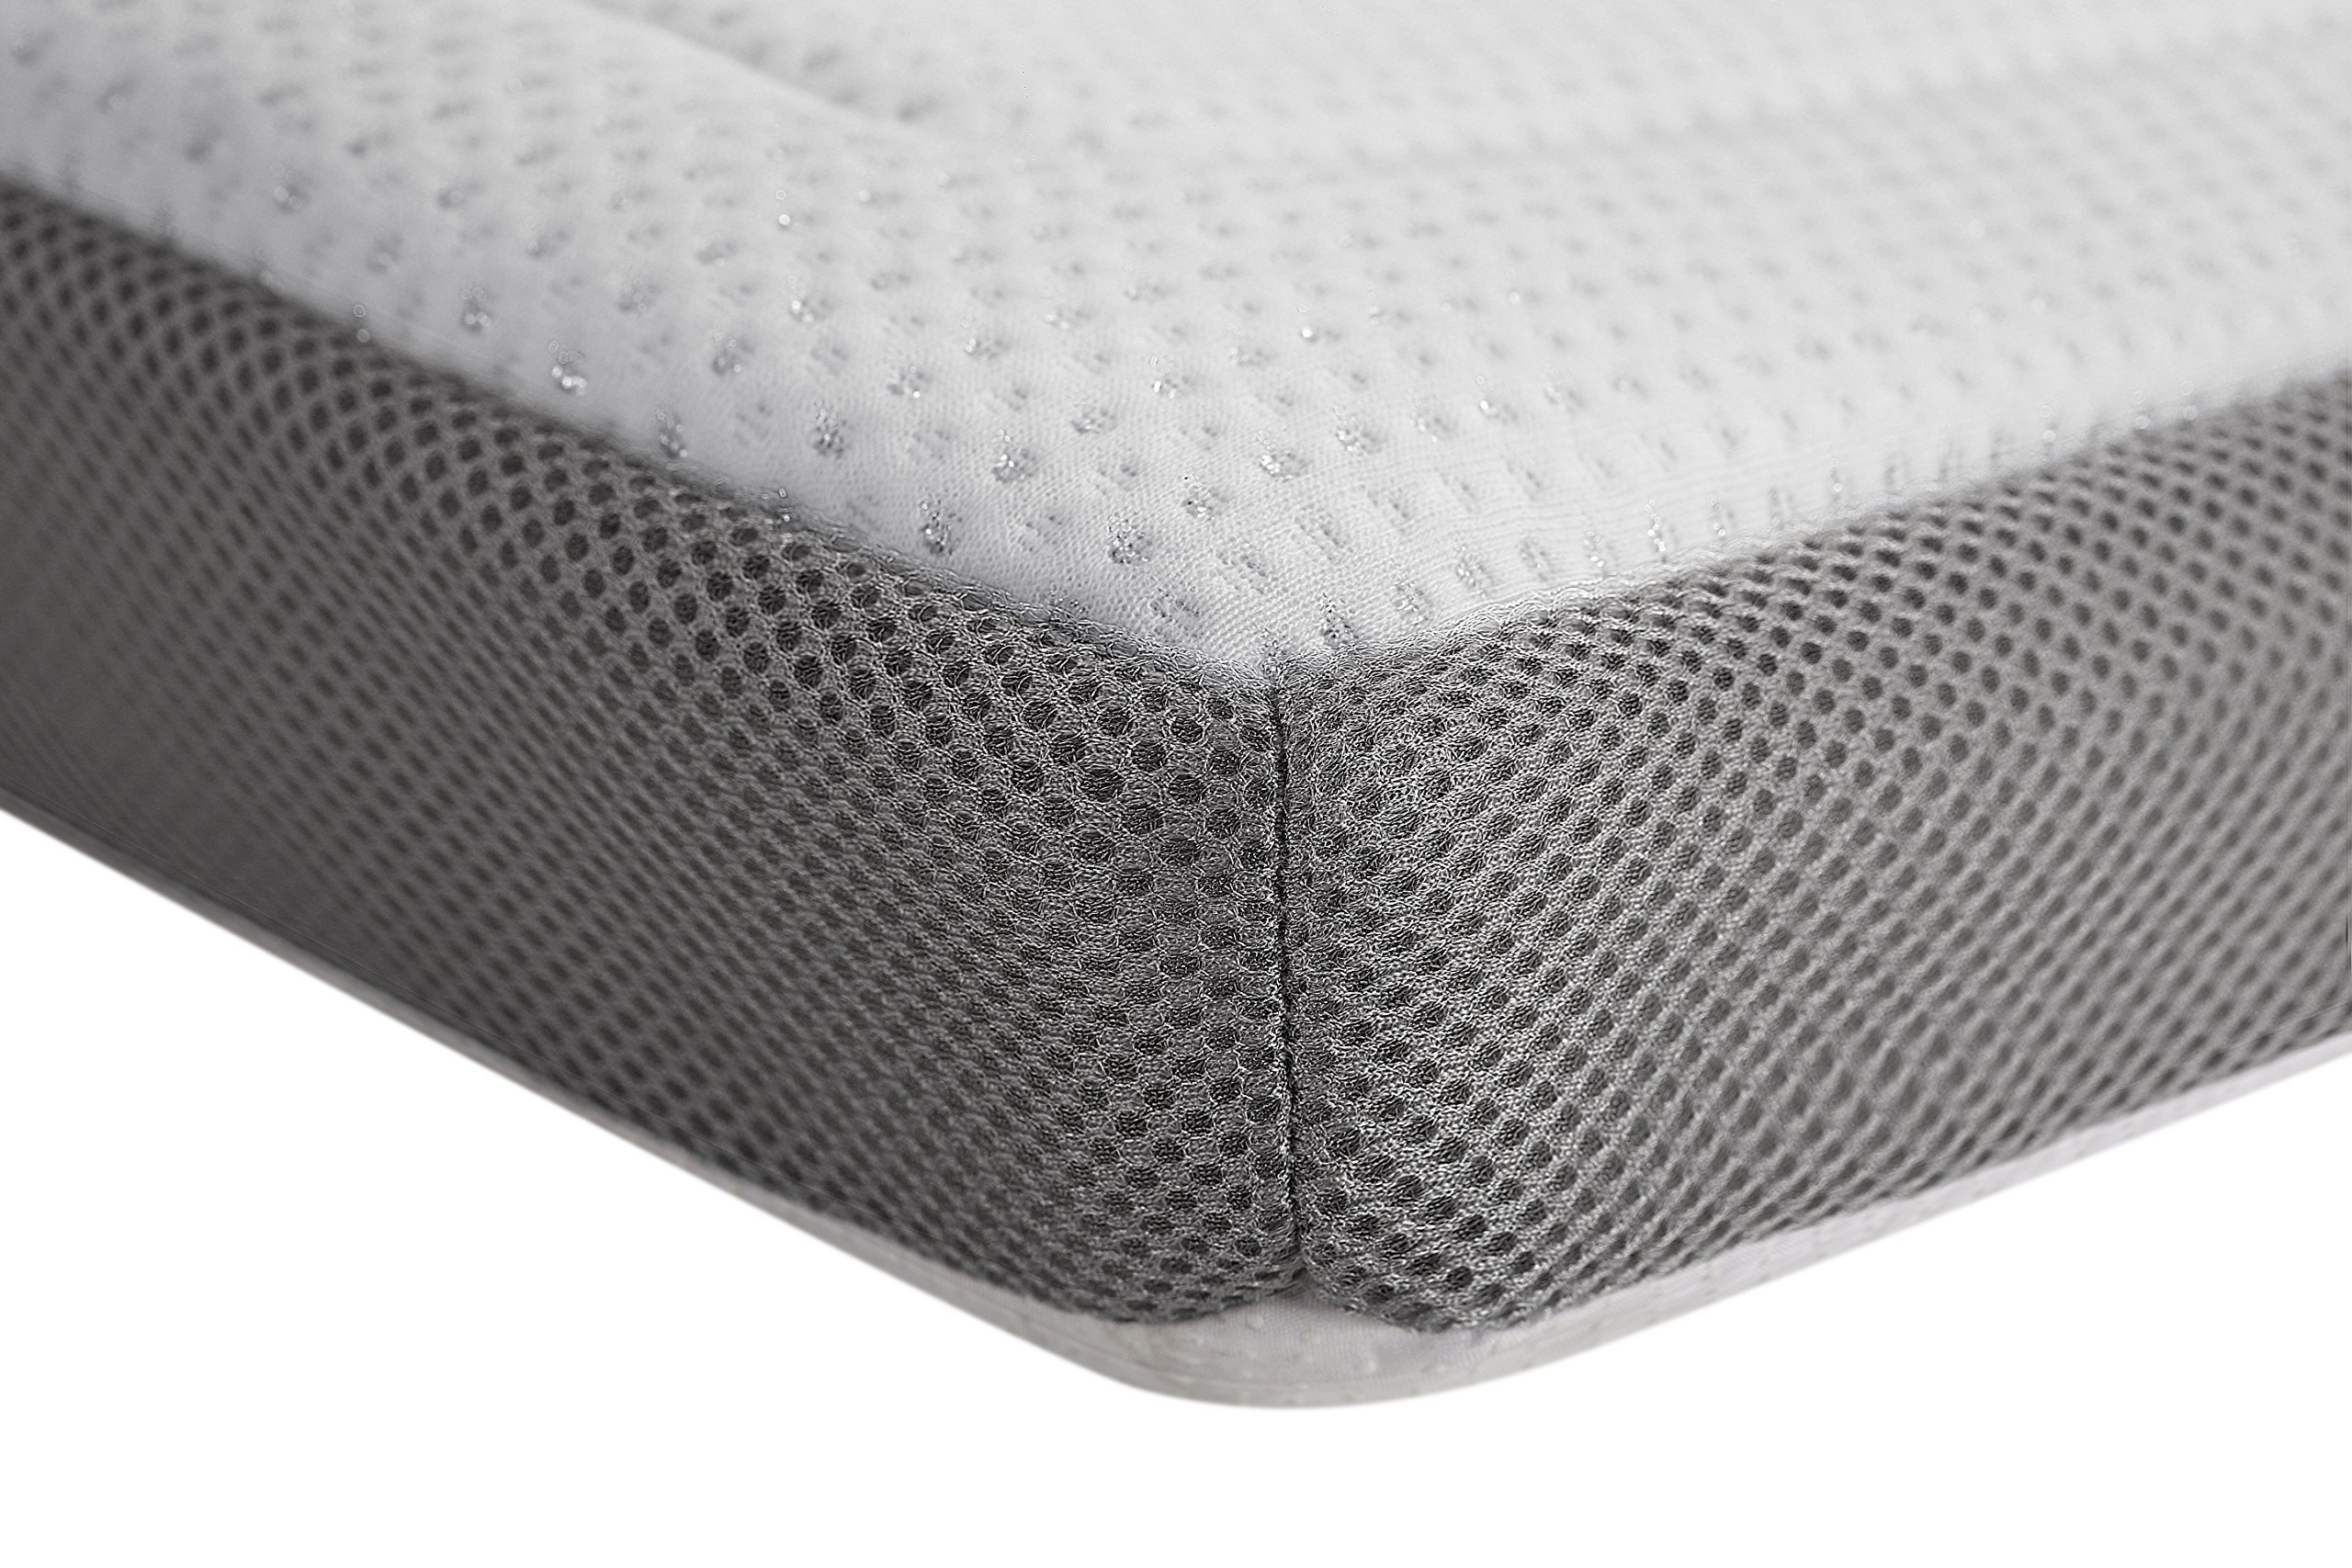 ALLRANGE 3-Inch Luxury Lurex Quilted Memory Foam Mattress Topper, Removable Quilted Cover, Mesh Gusset Sides, Hypoallergenic, Rolled Package, King Size